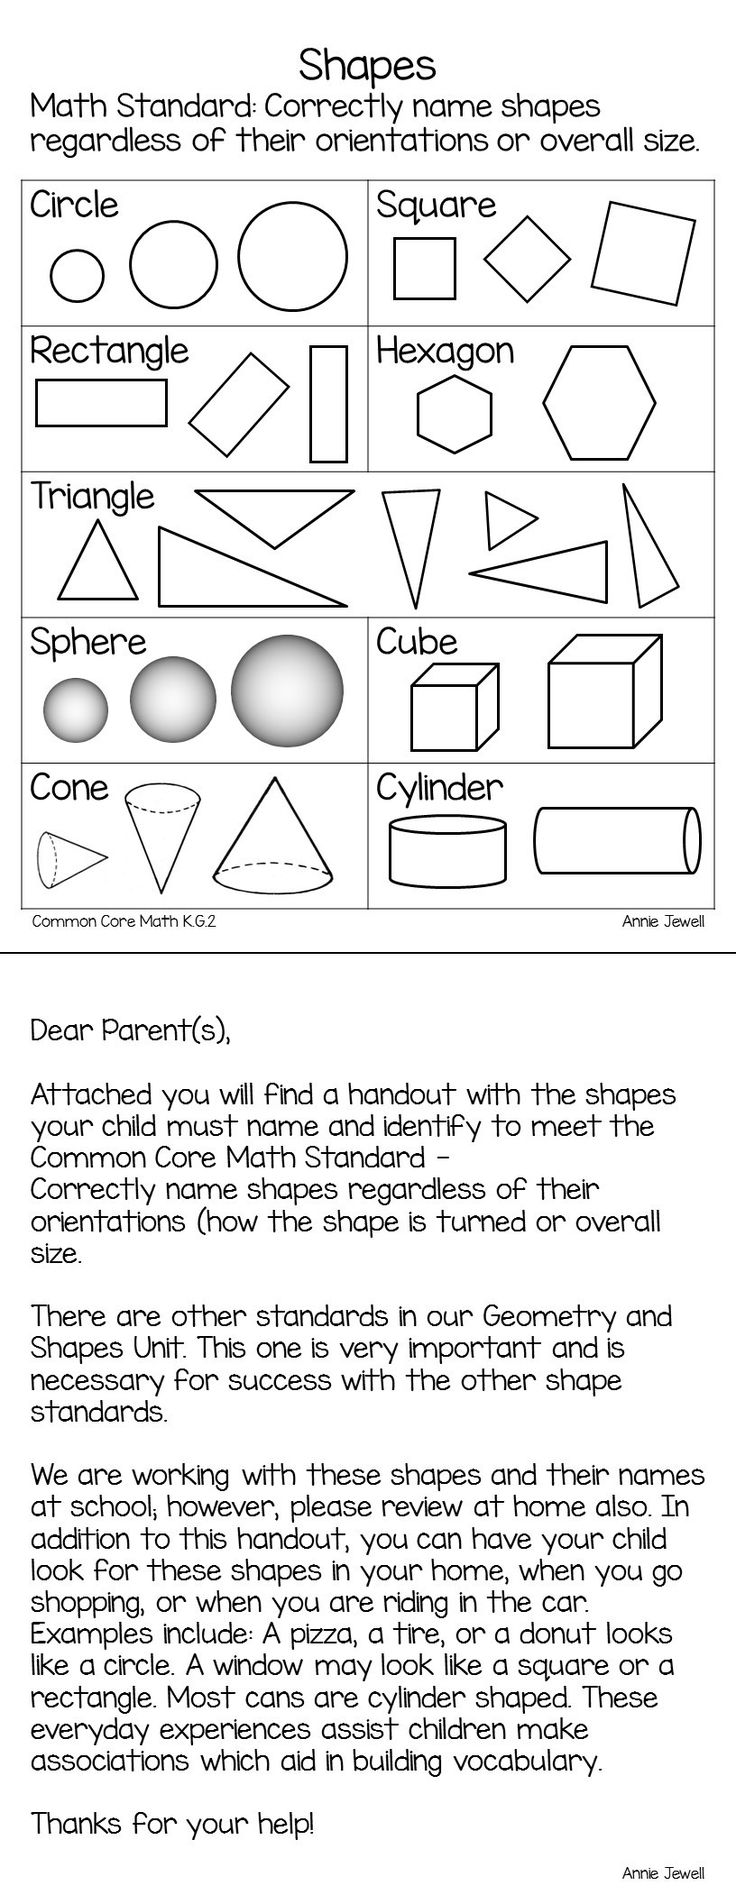 This freebie is a parent letter and handout with pictures for families to use when working with their children on correctly name shapes regardless of their orientations or overall size. This handout is especially helpful to parents of English Learners. Both the letter and picture handout point out that children must name the shapes regardless of the orientation which can be a struggle for some. Annie Jewell.